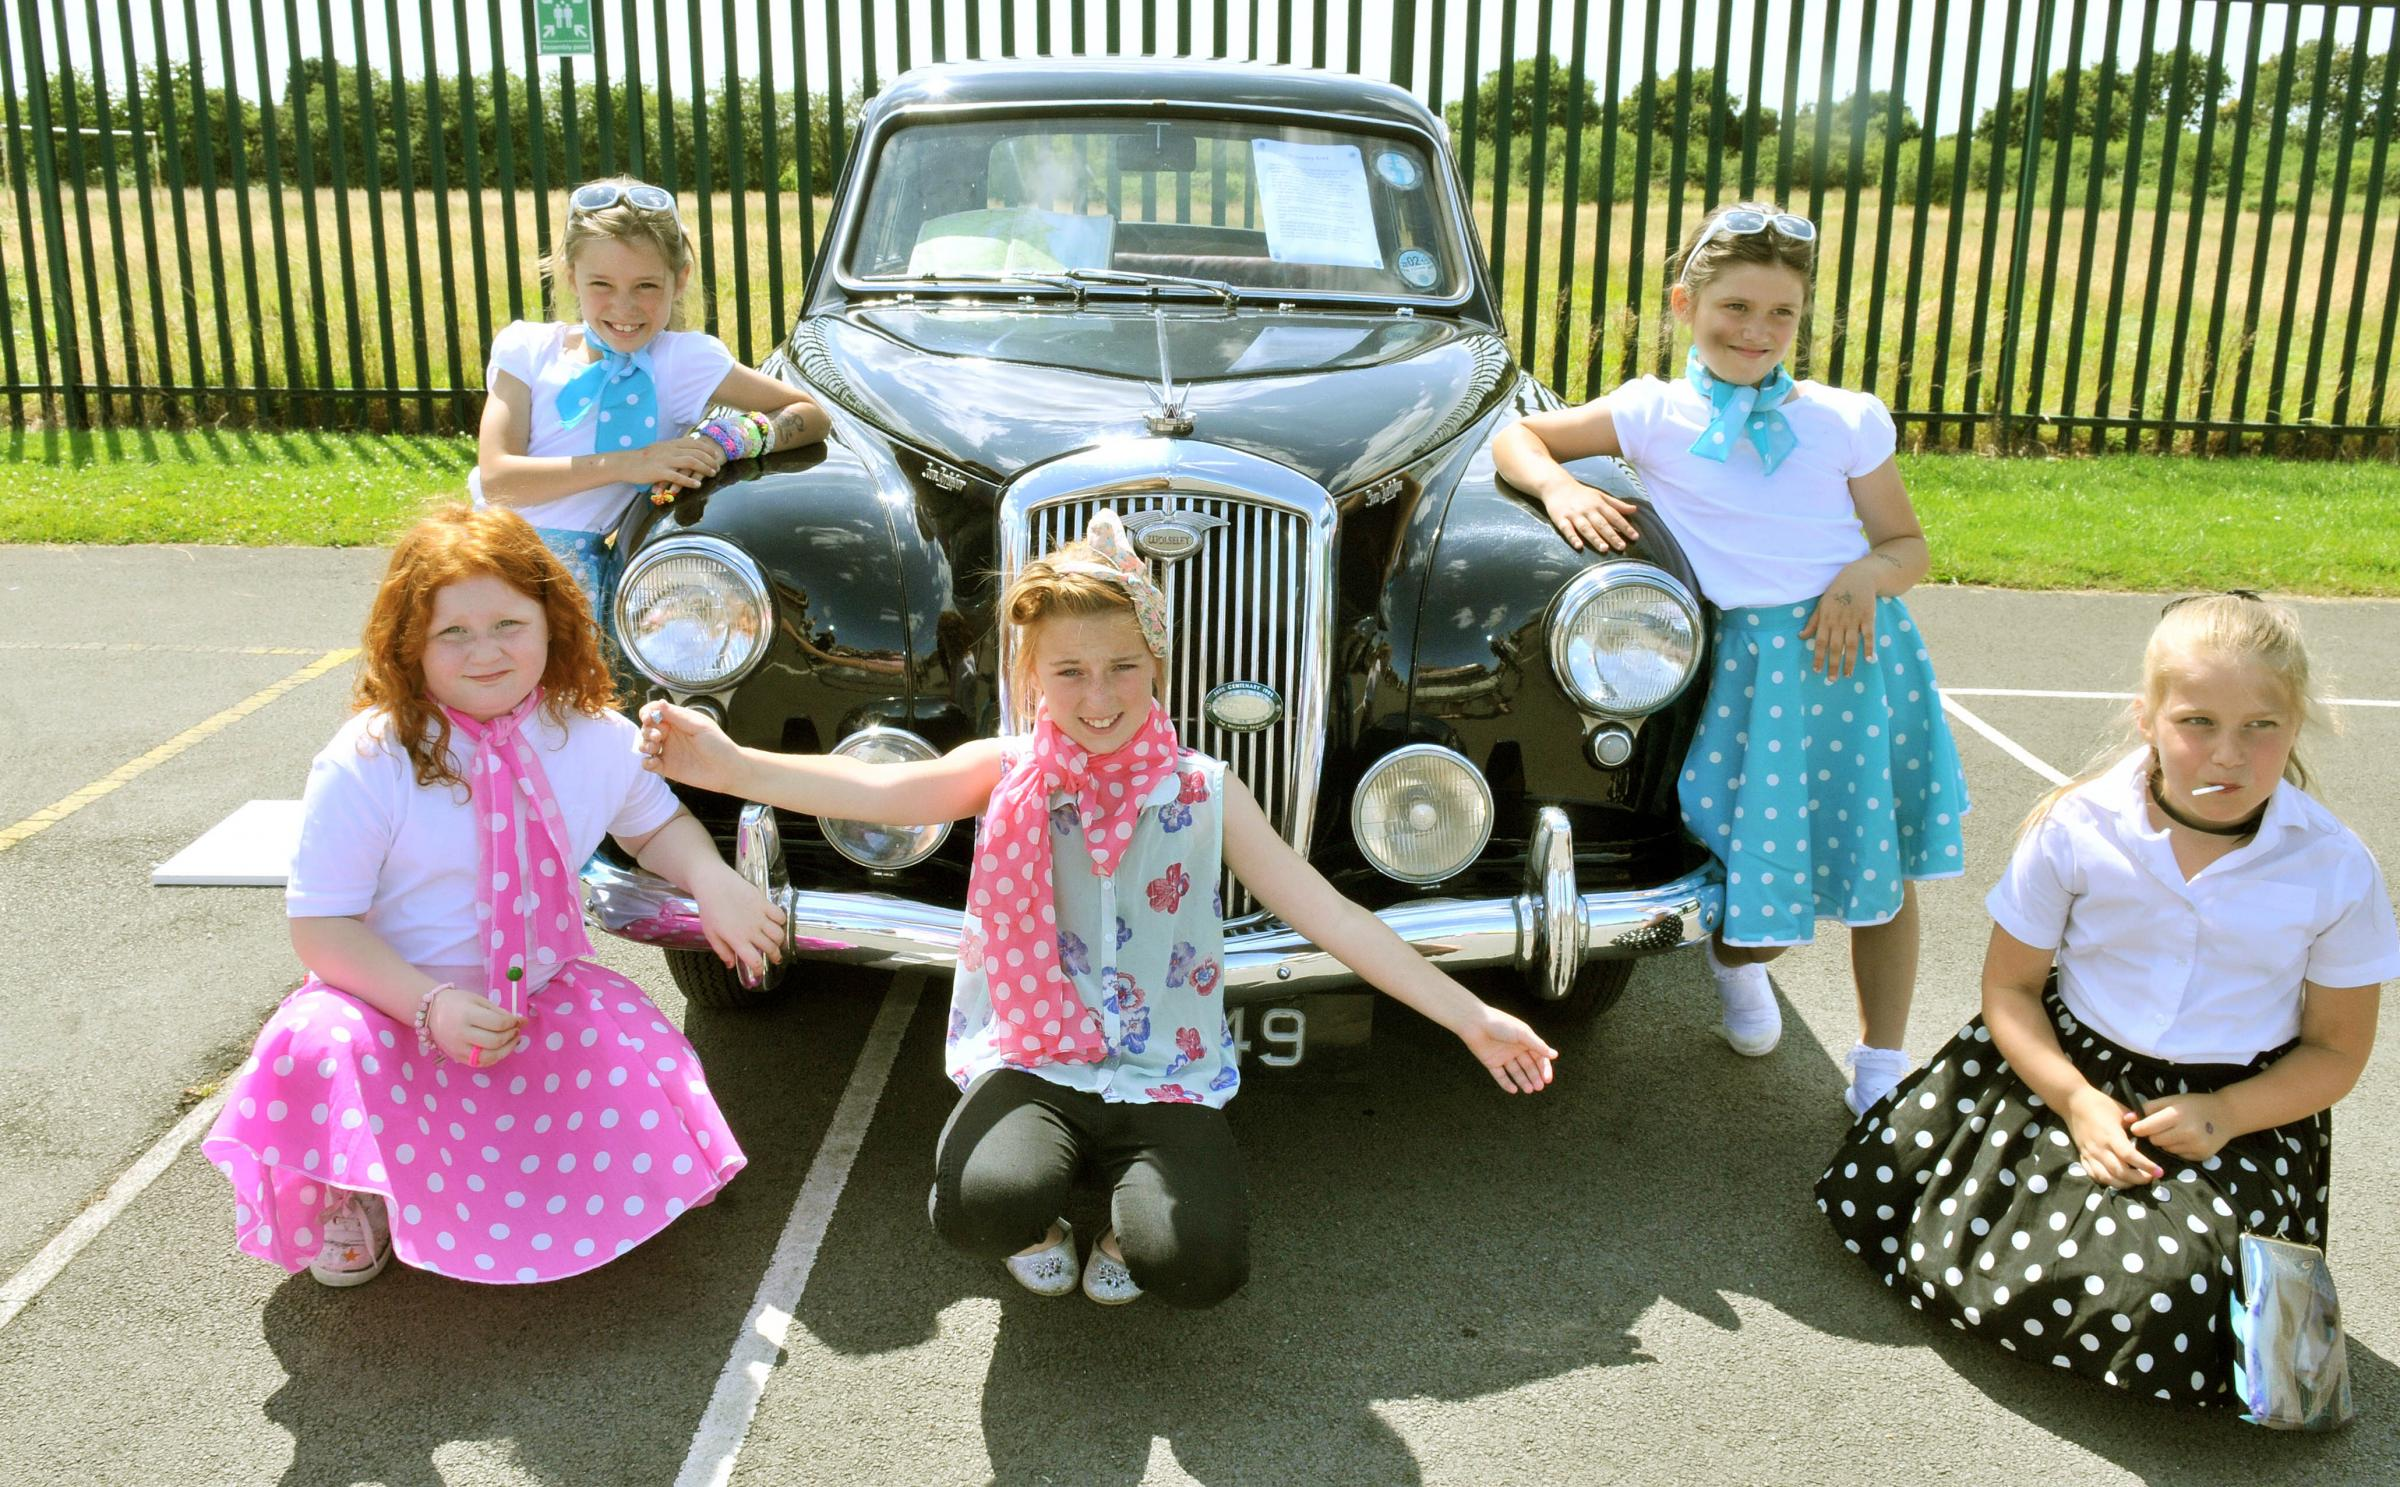 Pupils at Burton Green School celebrate their 60th anniversary